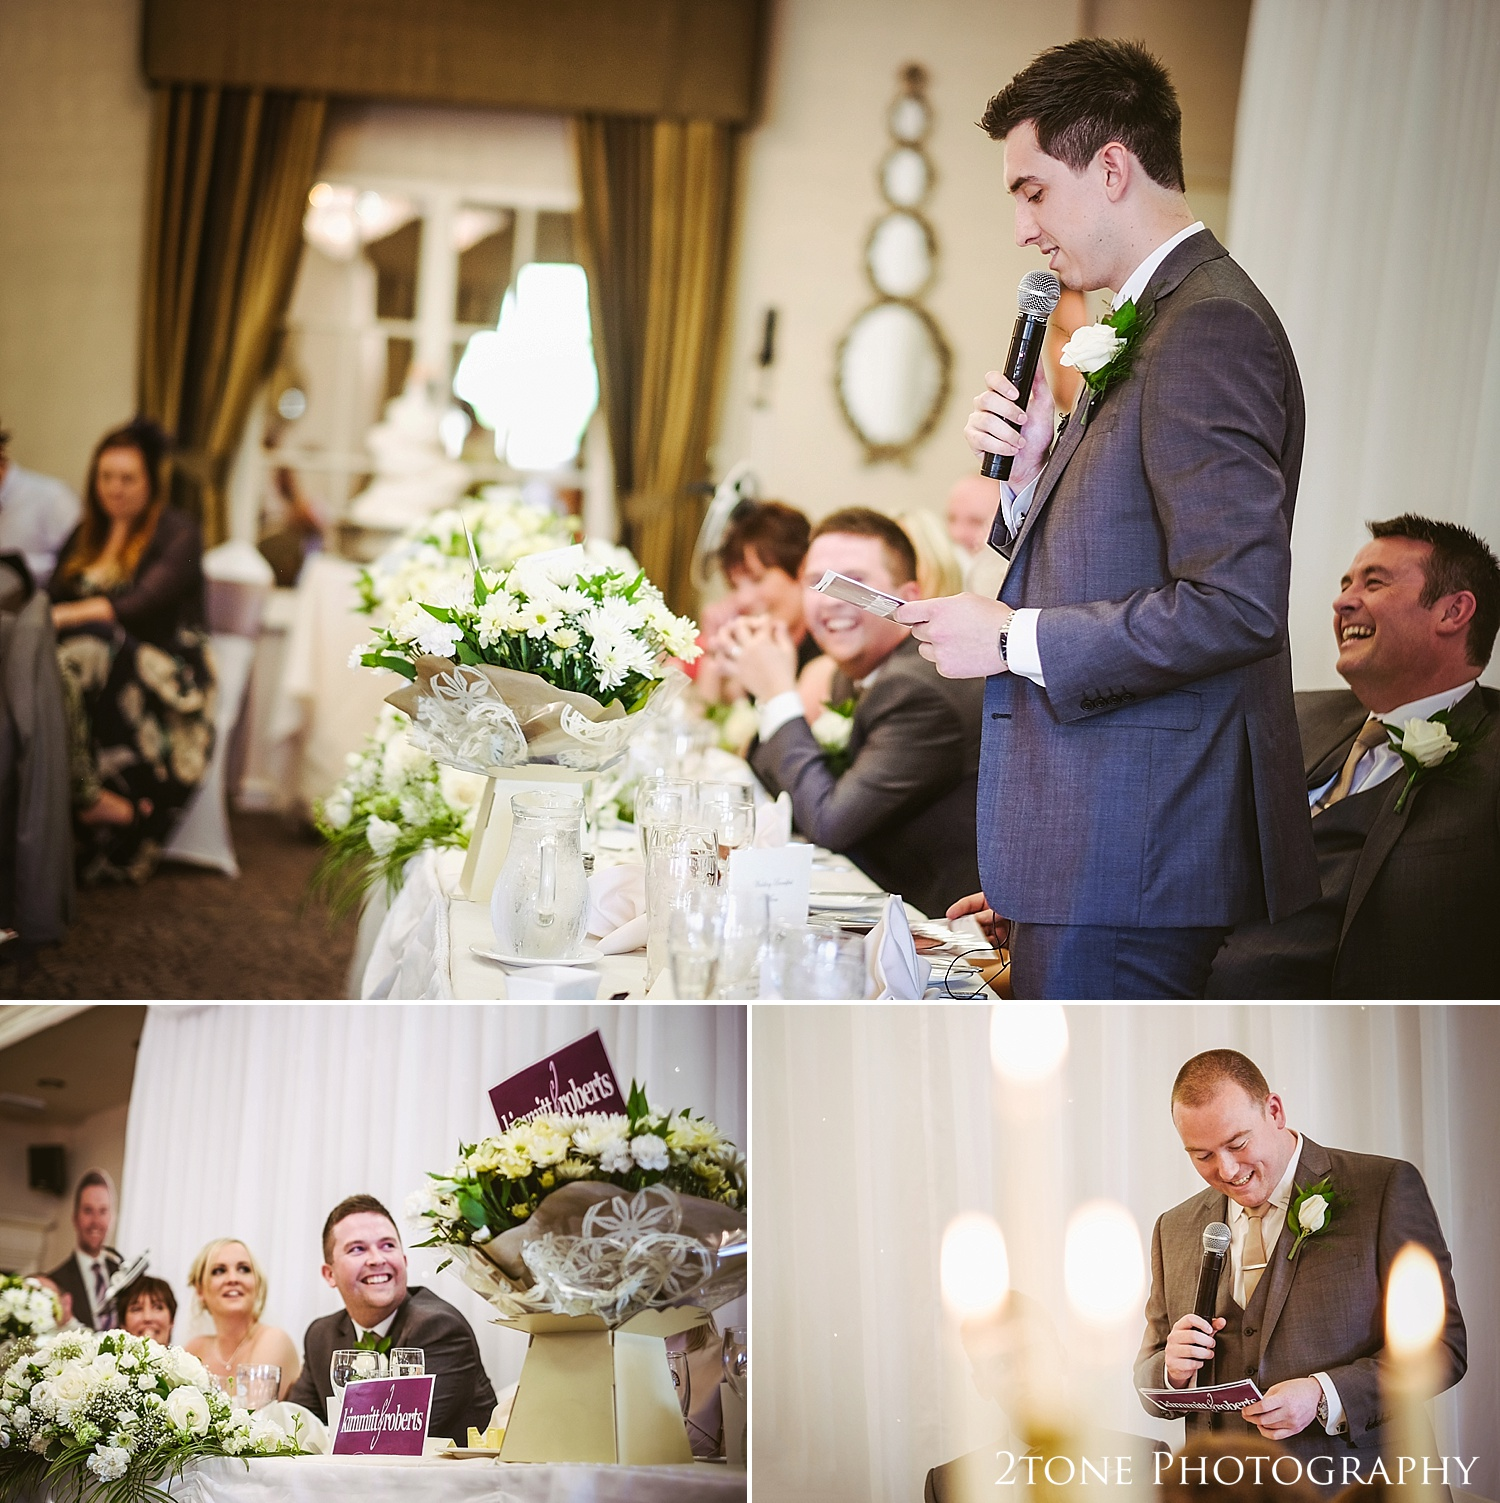 Weddings at the Ramside Hall in Durham.  Wedding photography by husband and wife team www.2tonephotography.co.uk